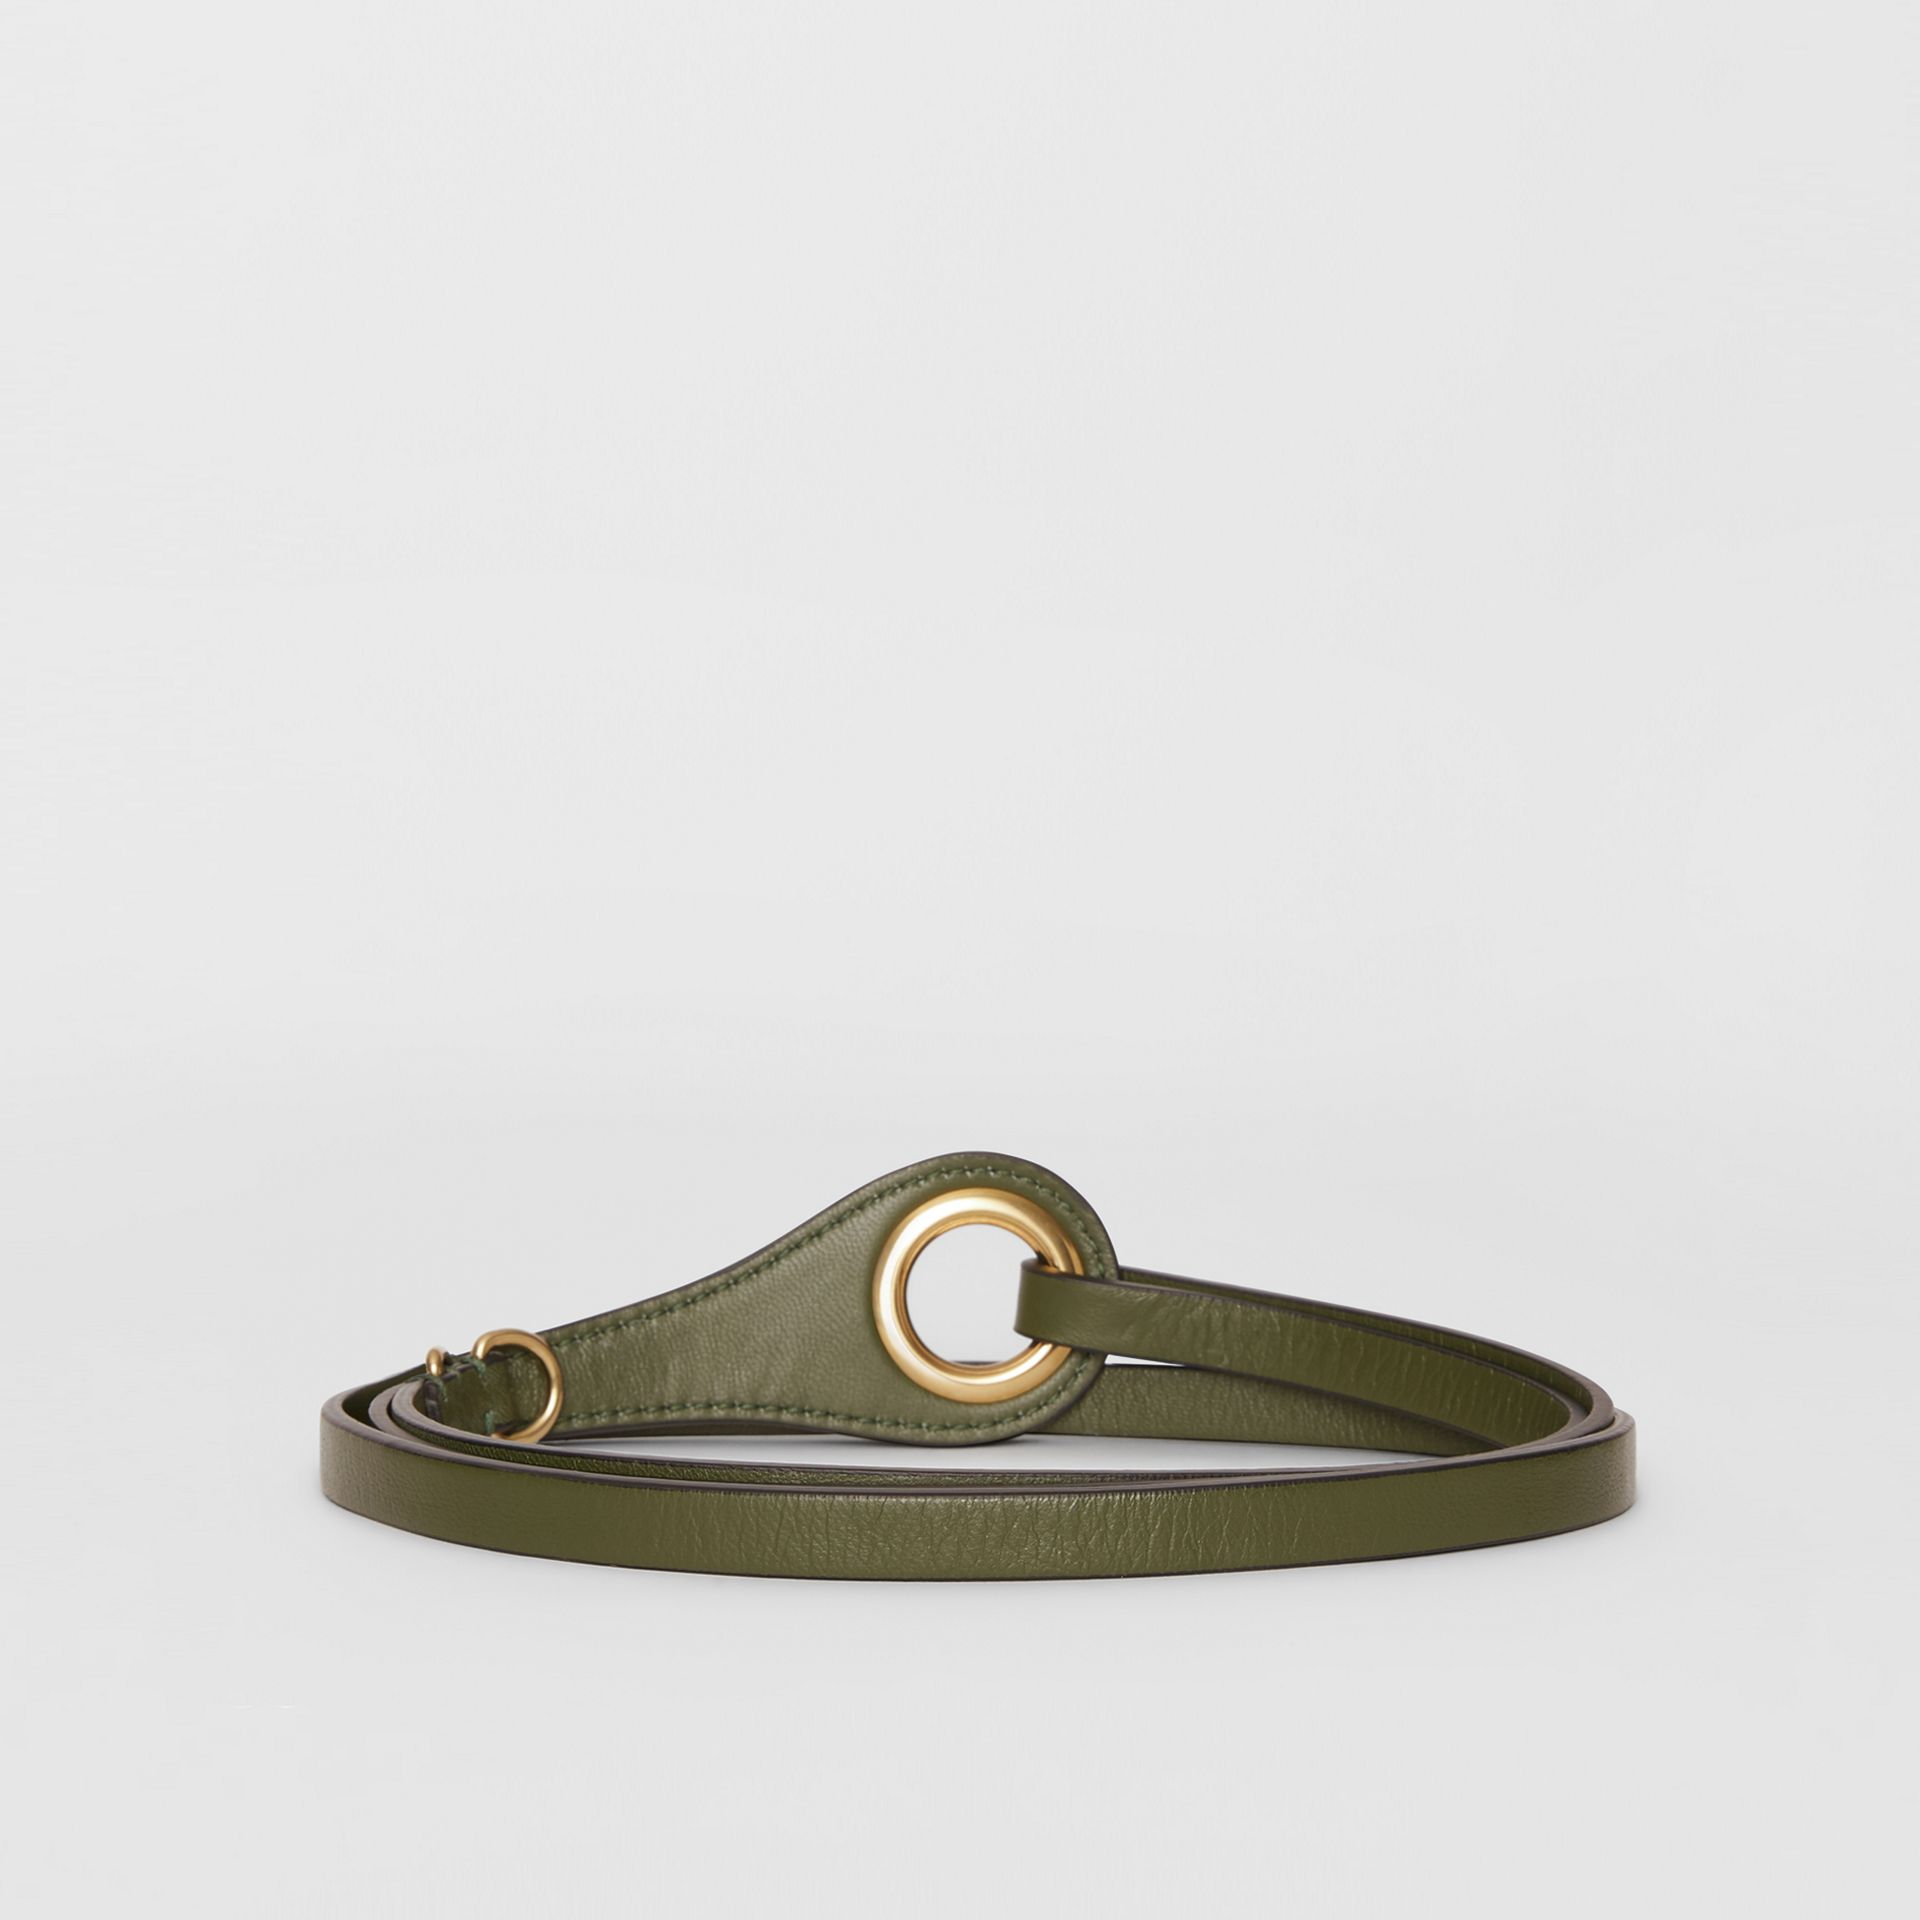 Grommet Detail Lambskin Belt in Dark Olive - Women | Burberry Australia - gallery image 4